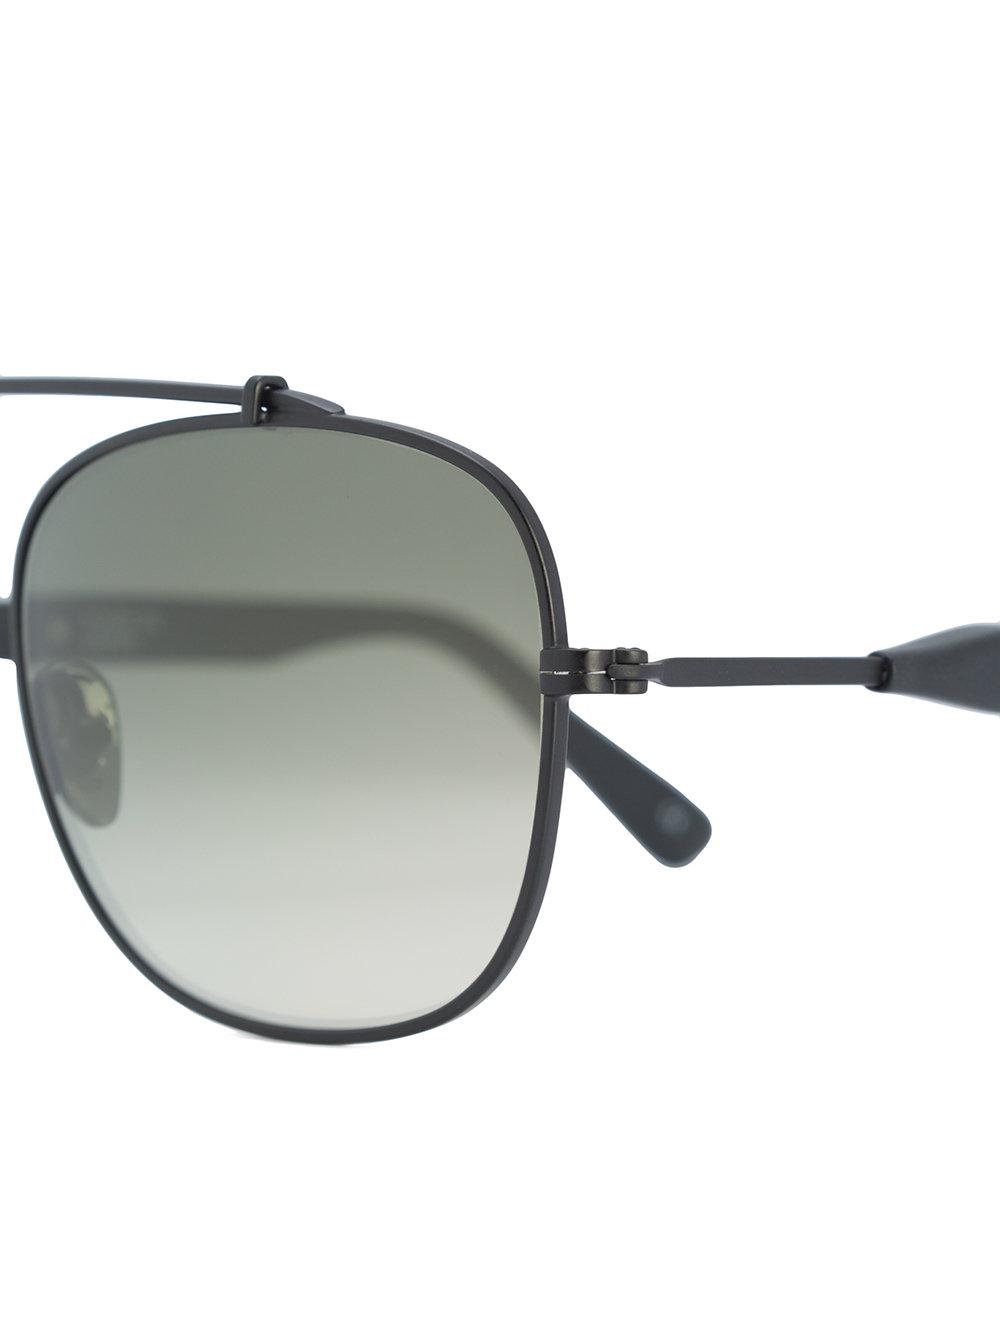 Westward Leaning Malcolm No Middle 05 Sunglasses in Black